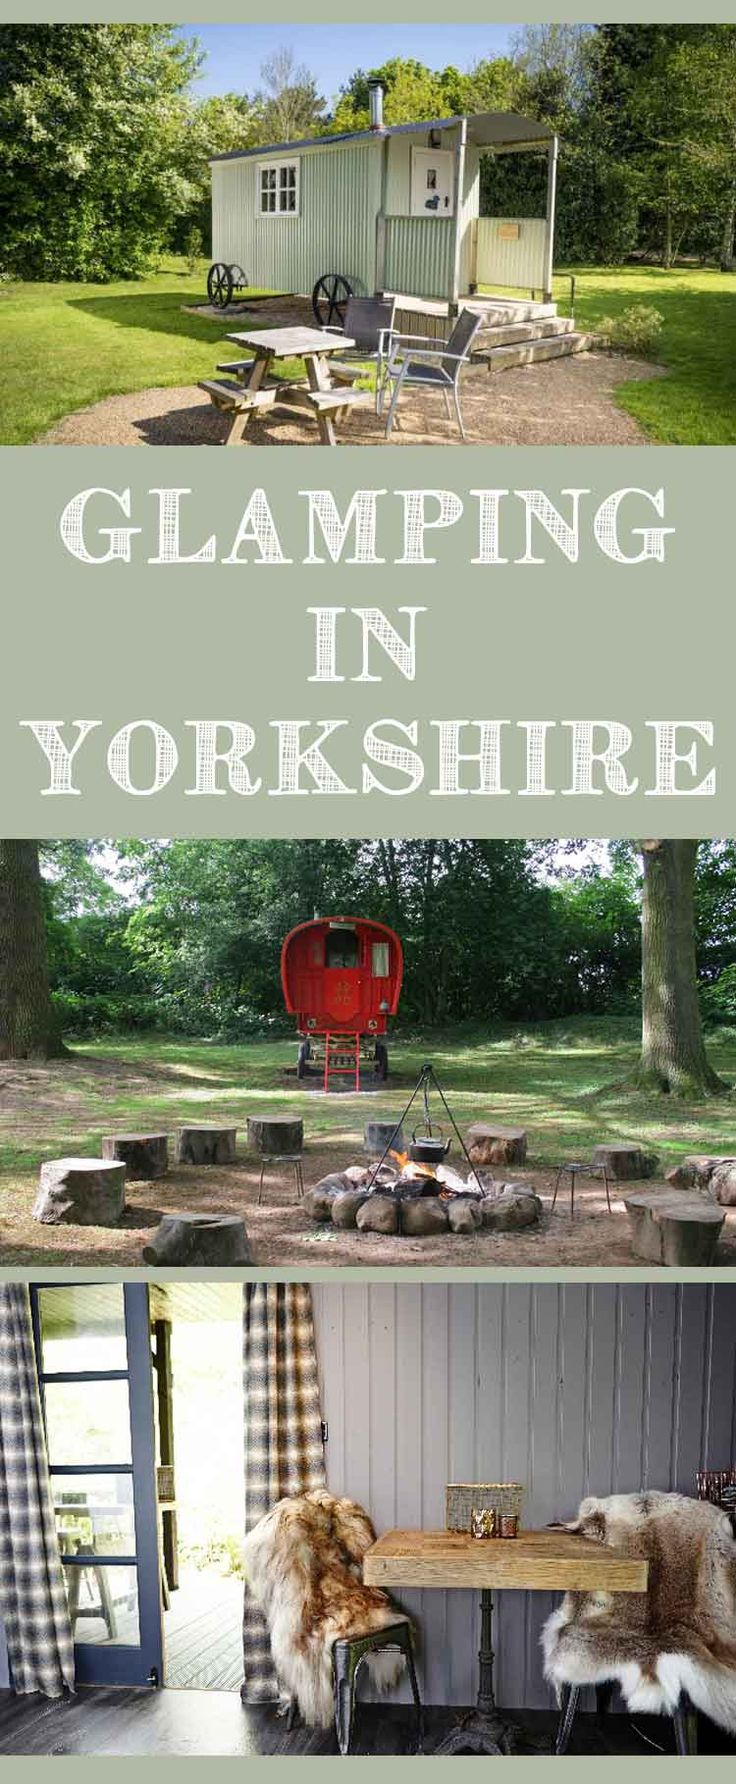 Glamping Yorkshire.  From luxury glamping with hot tubs to more rustic yurt holidays. So many places to treat yourself to some Yorkshire glamping!